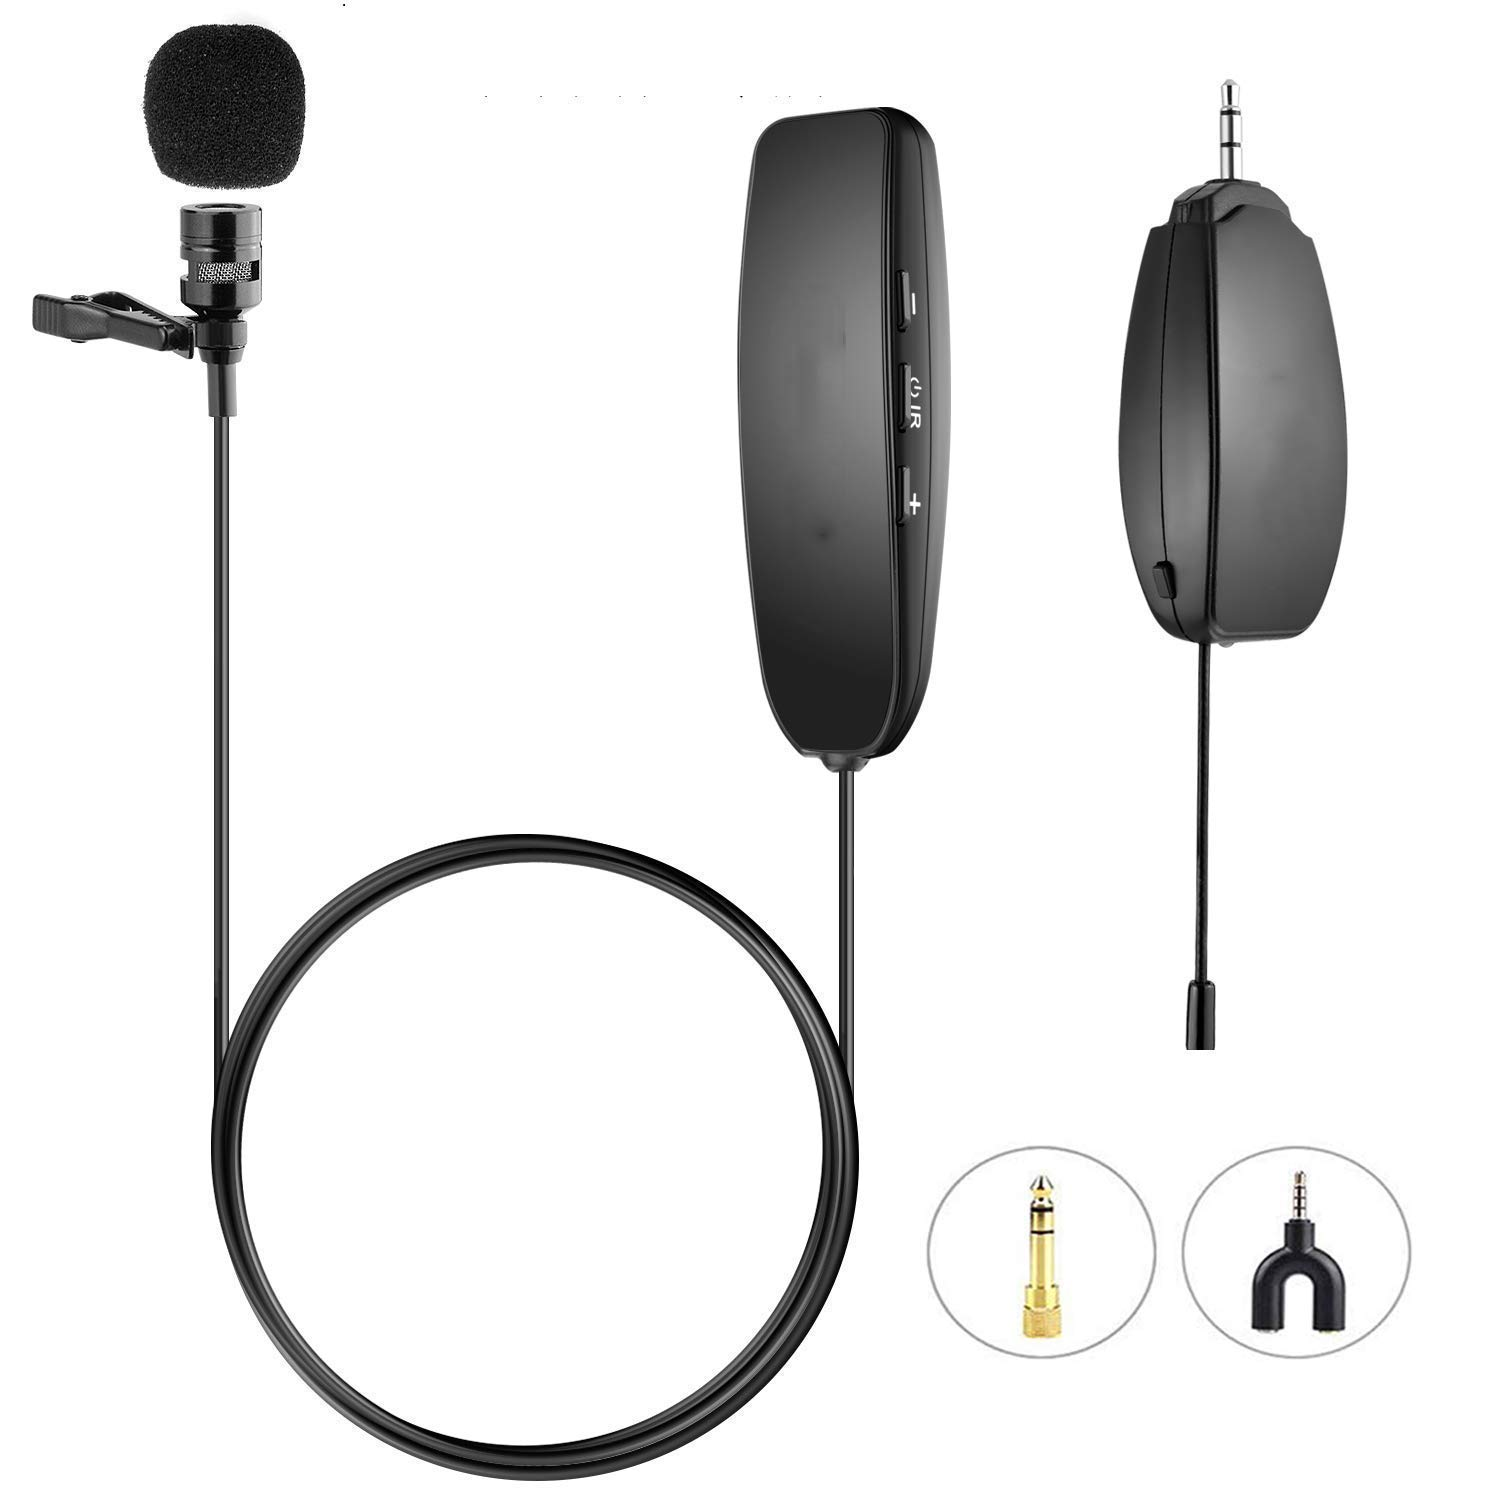 Wireless Lapel Microphone Lavalier Microphone 150ft Stable Wireless Transmission Voice Recording for Phones, Cameras, Voice Amplifier for Speakers by Hafone